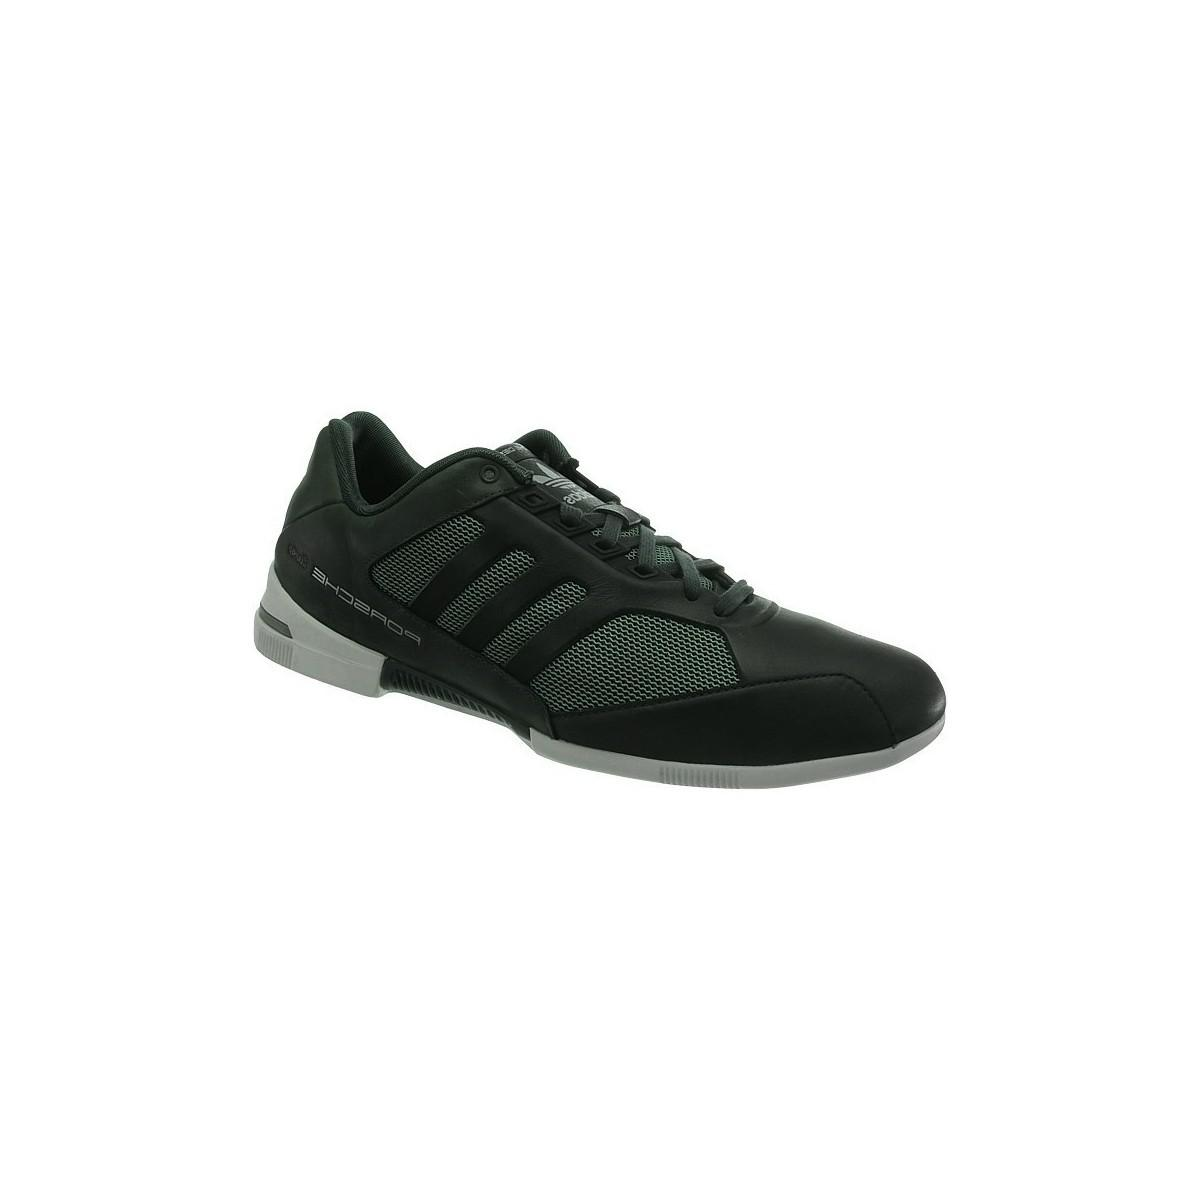 4d6d8ca4a051d8 Adidas Porsche Turbo 12 Men s Shoes (trainers) In Black in Black for ...